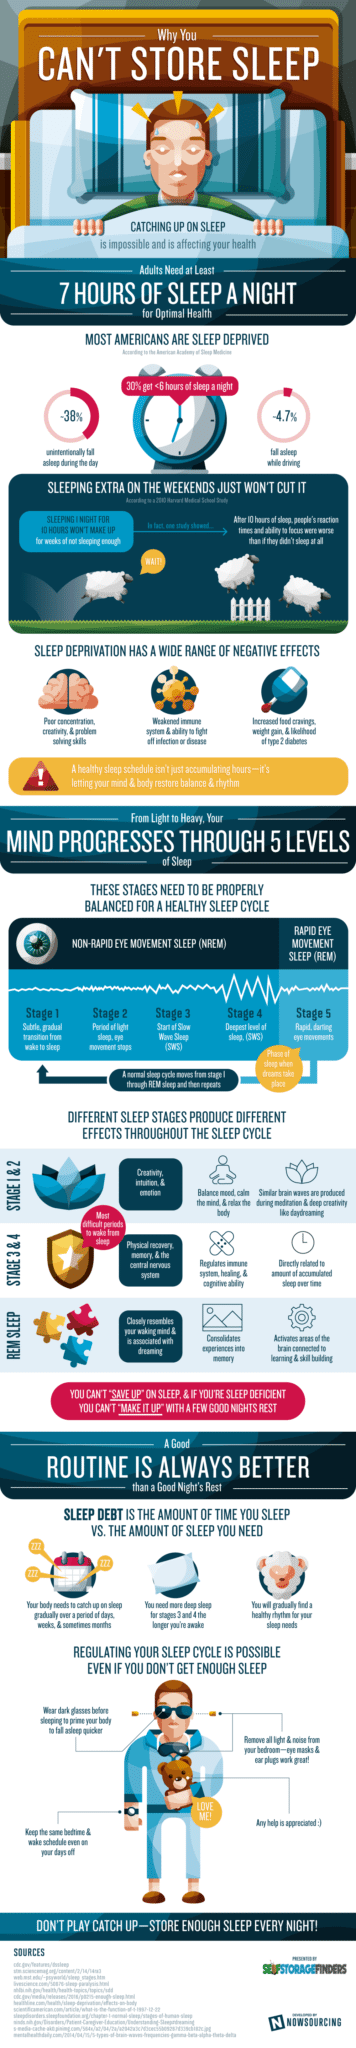 Stop Trying To Make Up Sleep On The Weekends [Infographic] 1